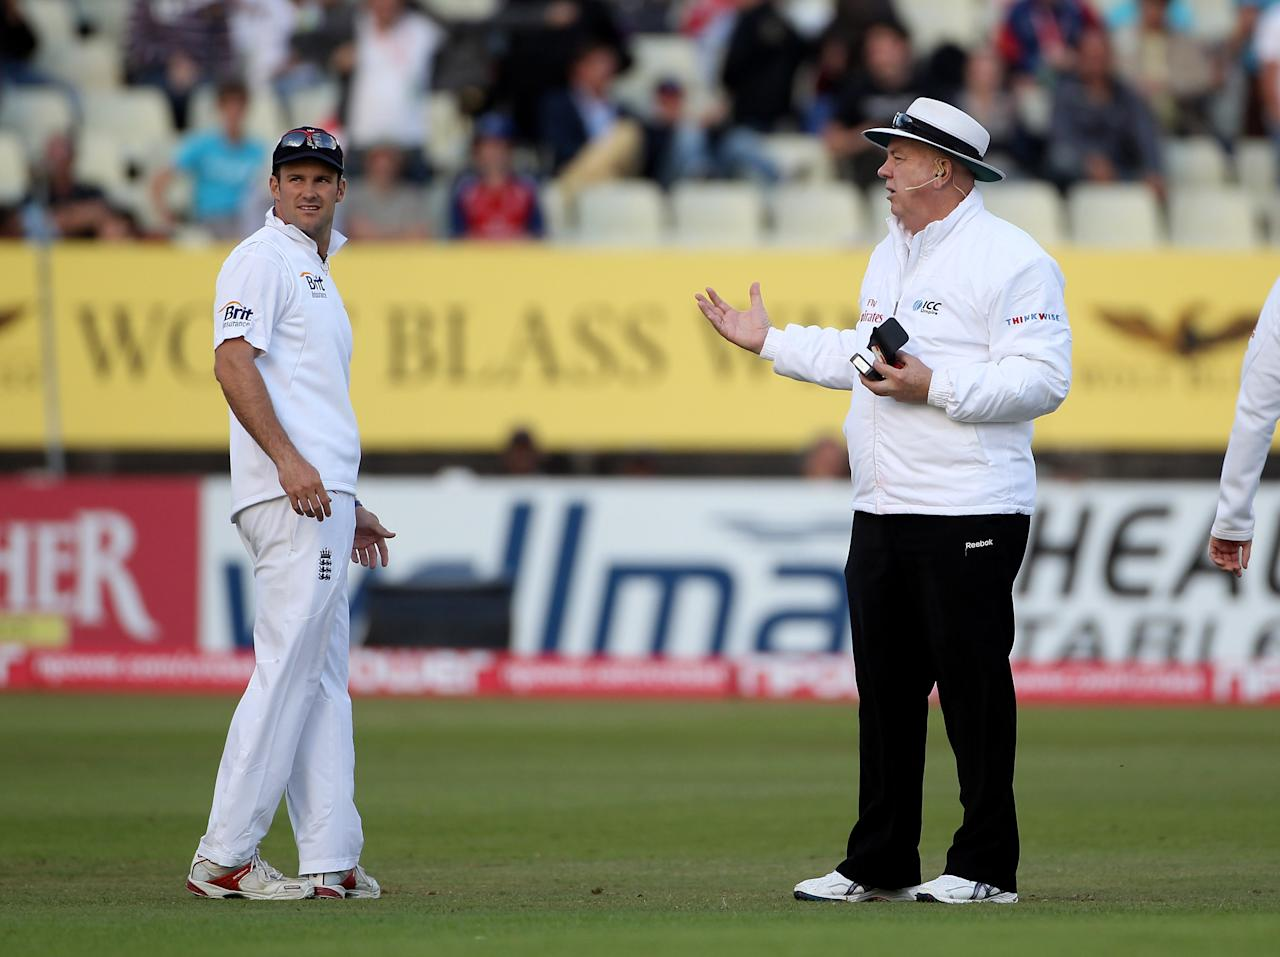 BIRMINGHAM, ENGLAND - AUGUST 07:  Andrew Strauss of England has a chat with umpire Steve Davis after play was stopped by bad light during day two of the 2nd npower Test Match between England and Pakistan at Edgbaston on August 7, 2010 in Birmingham, England.  (Photo by Tom Shaw/Getty Images)